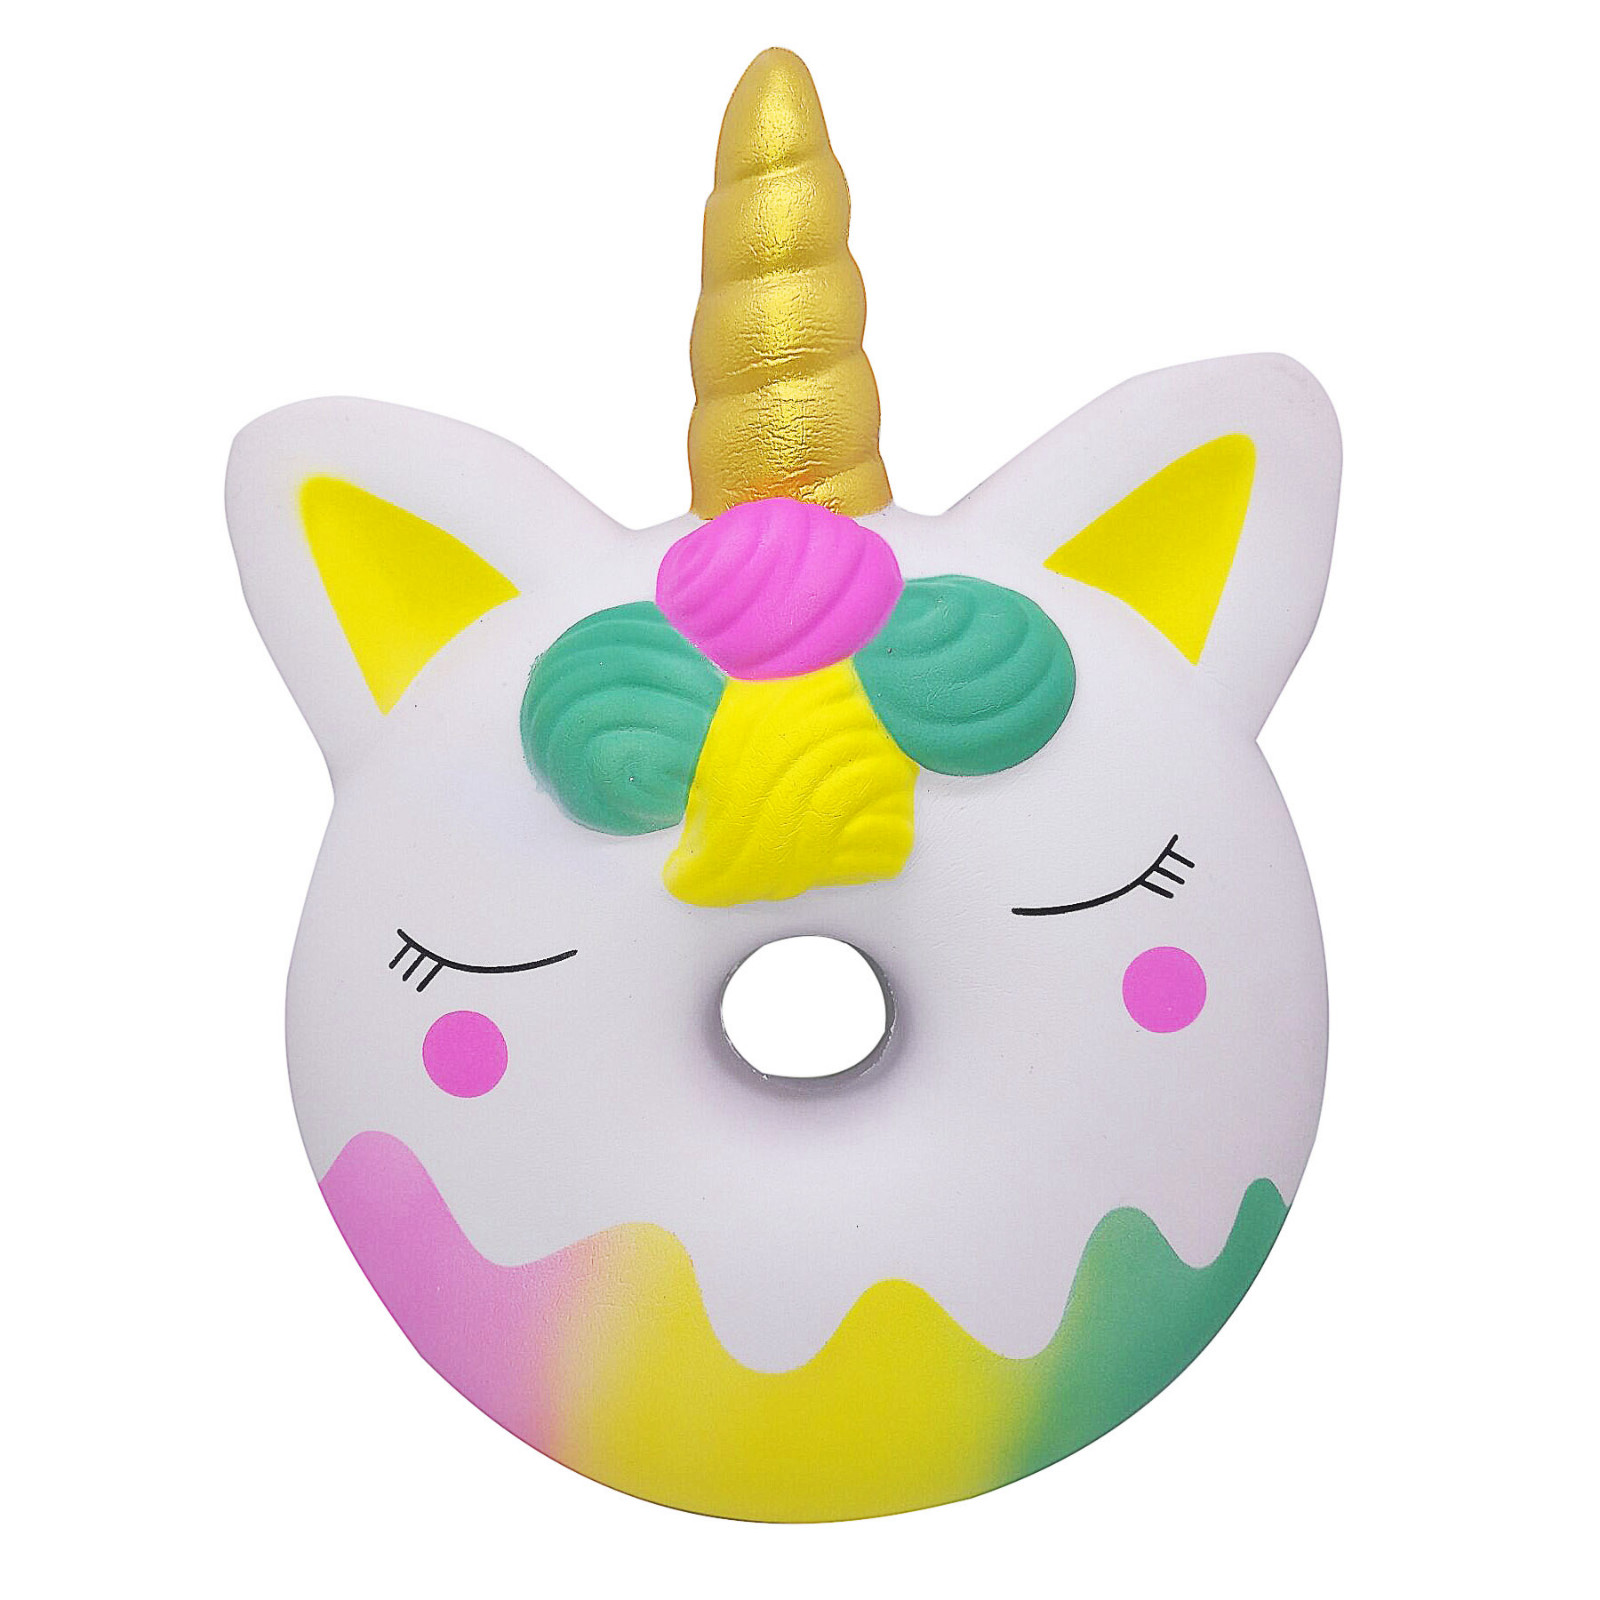 Squishy Kawaii Gigantes Soft Squeeze Toys Squishy Oversized Slow Rebound Decompression Vent Toy Donut Good Gift For ChildrenW802